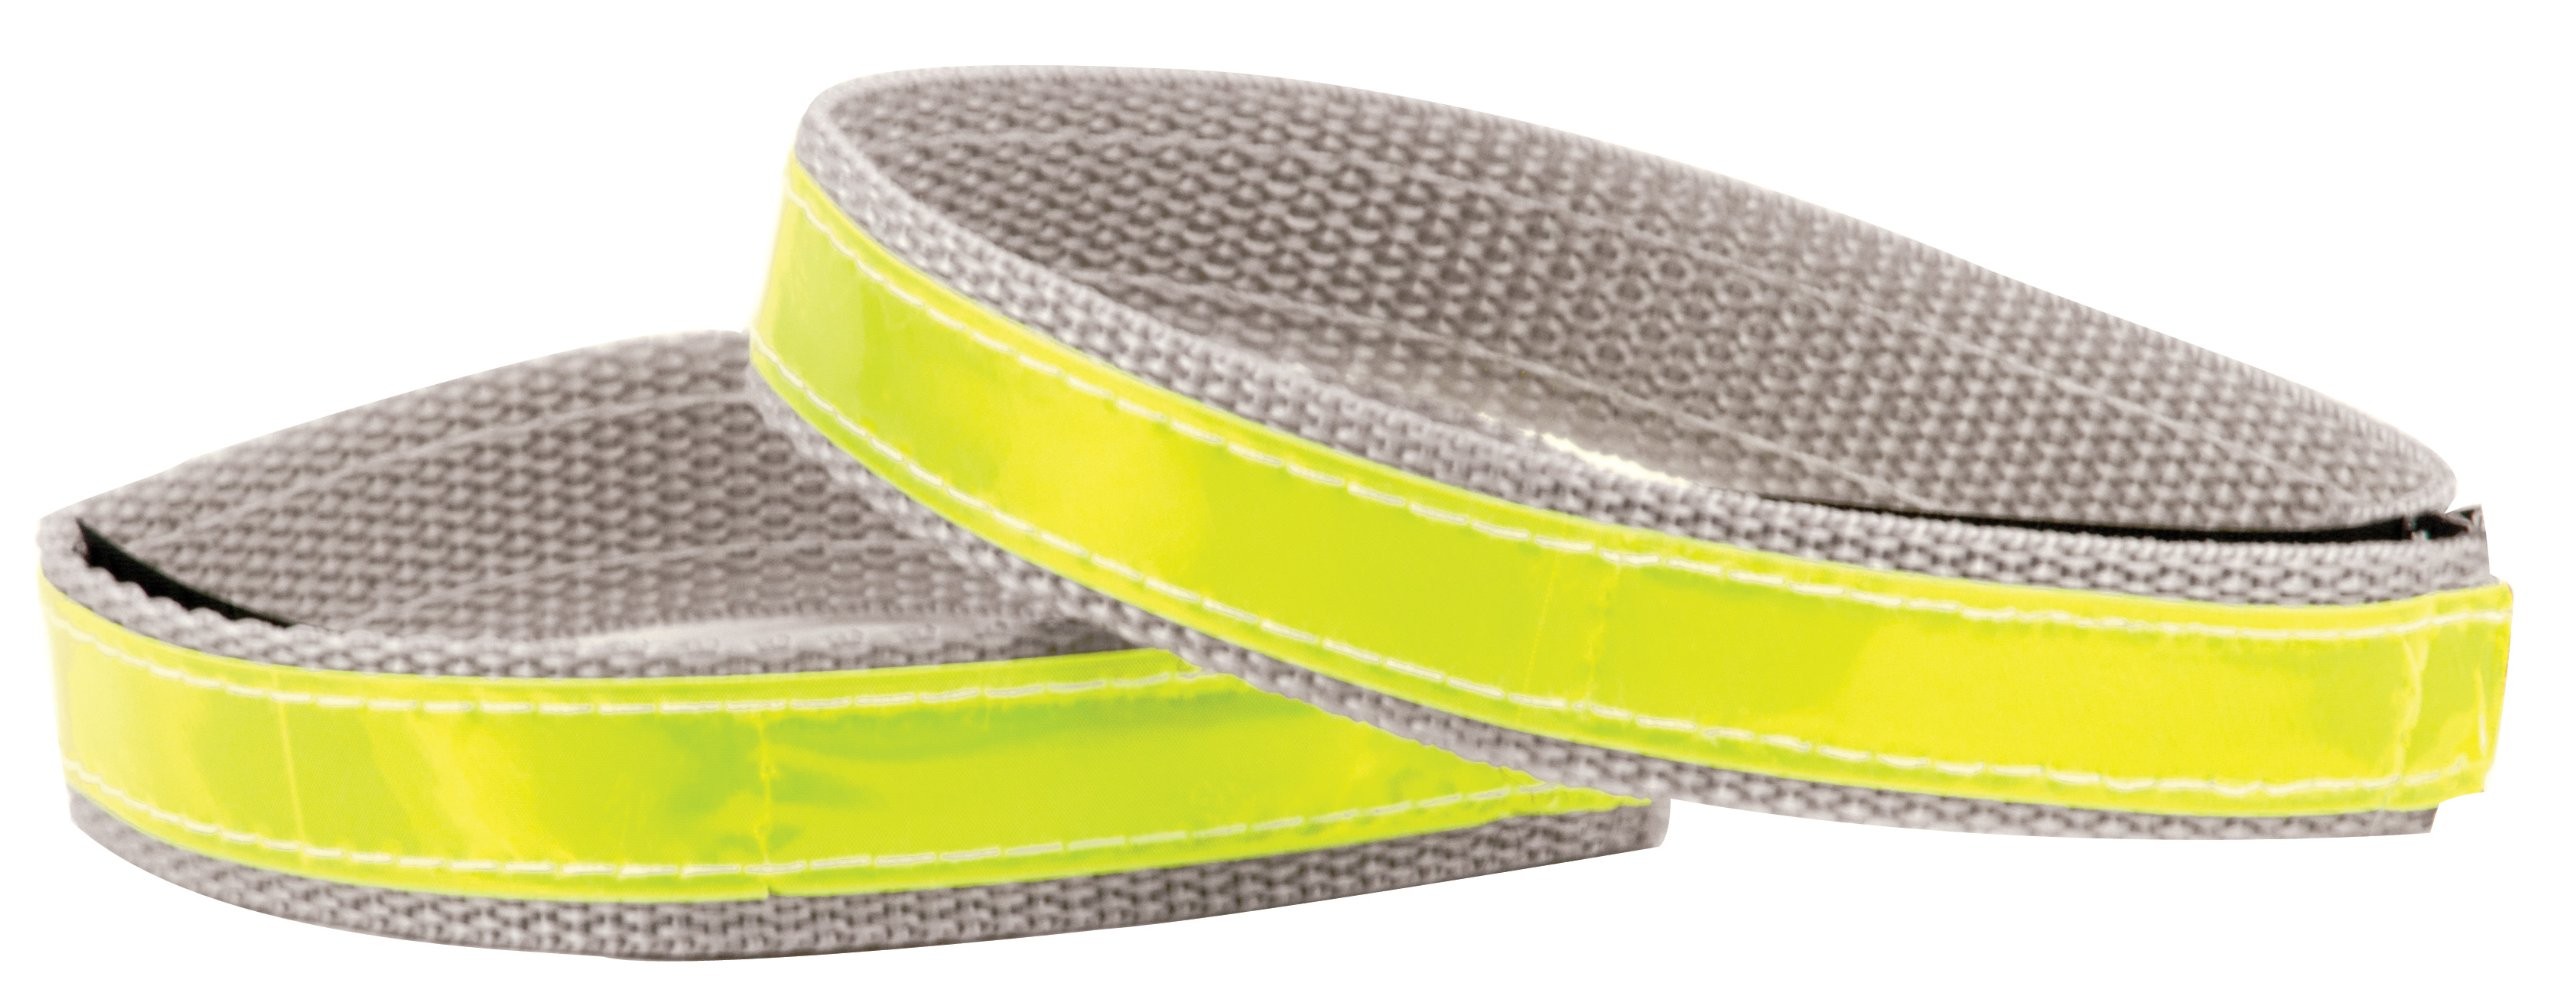 Nathan Reflective Cyclist's Anklebands 1-Pair